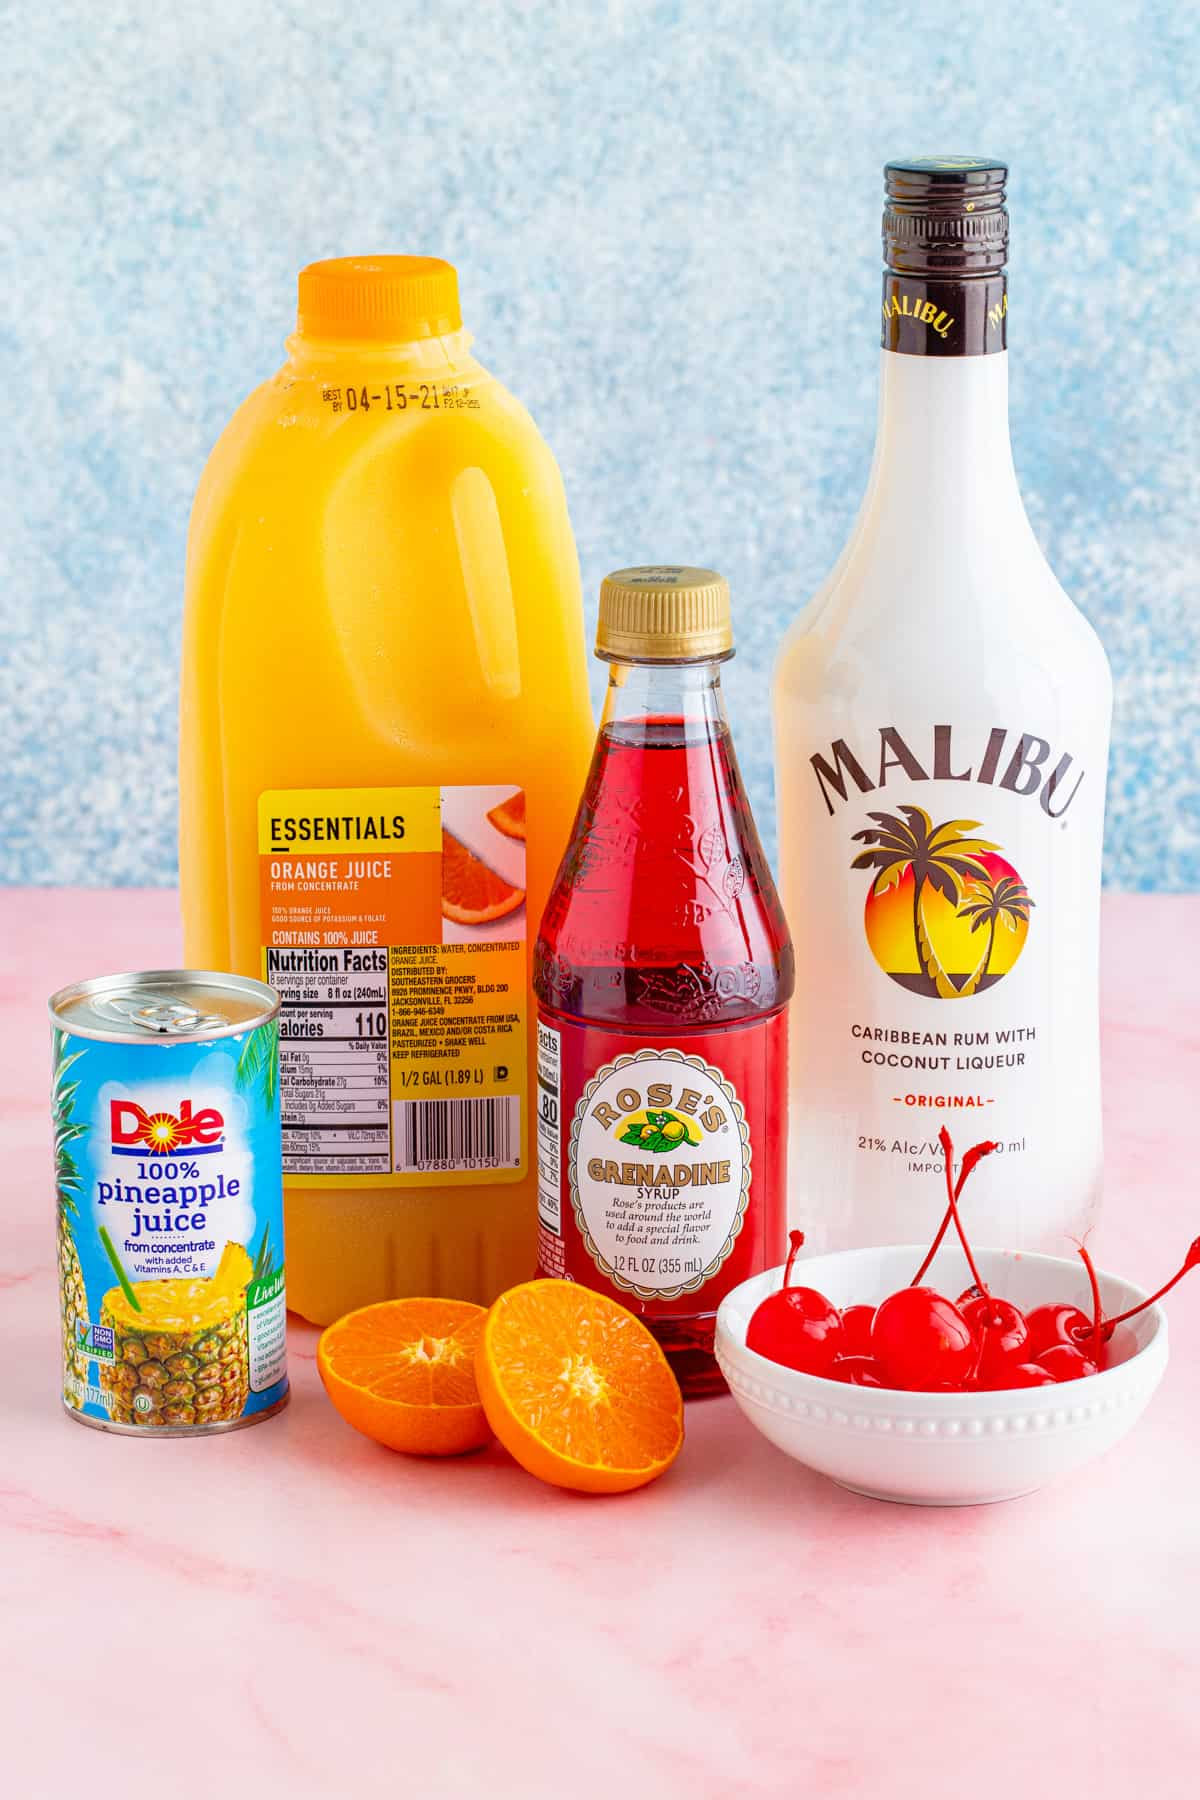 Ingredients needed to make a Malibu Sunset